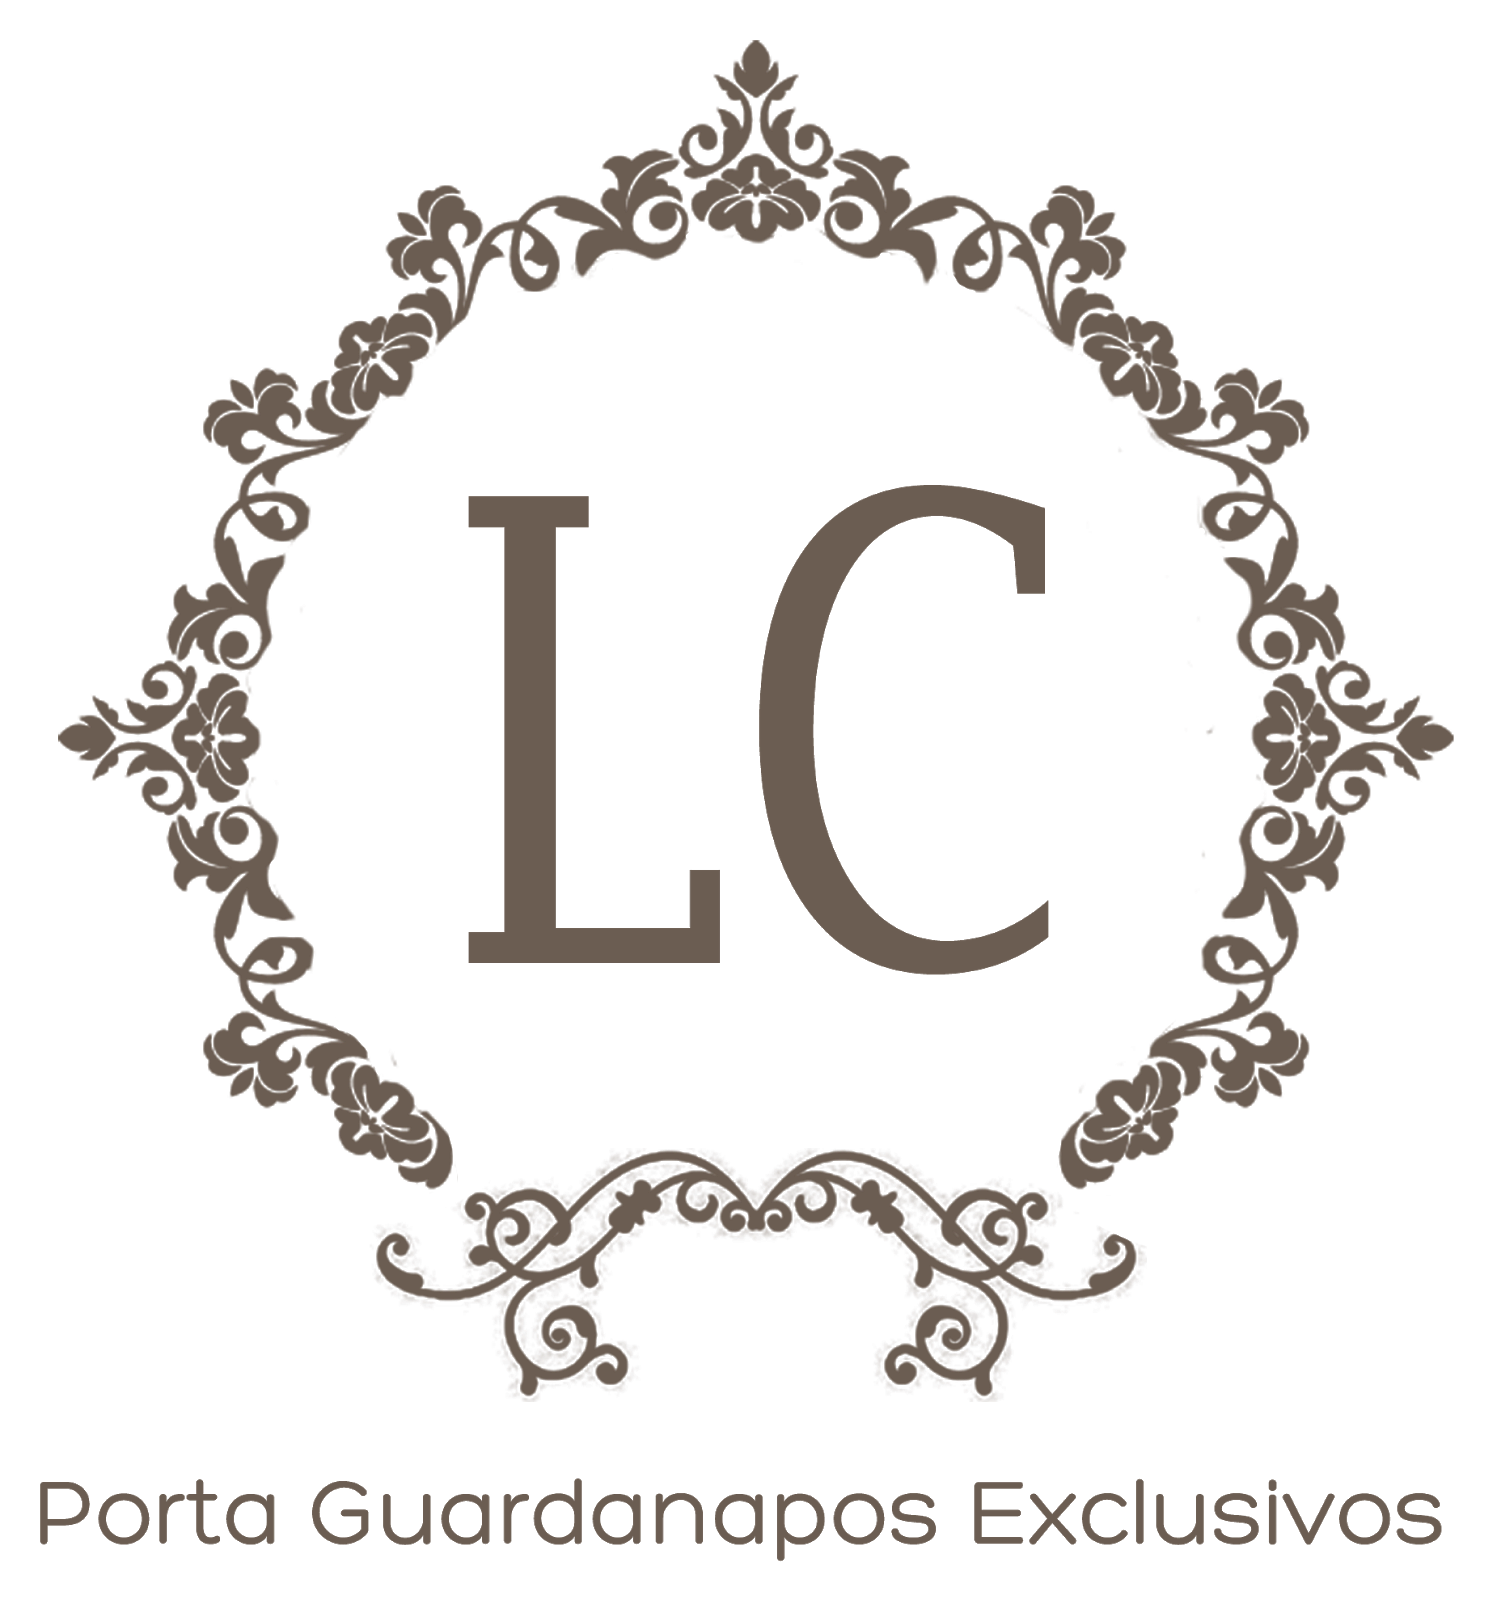 LC Porta Guardanapos Exclusivos